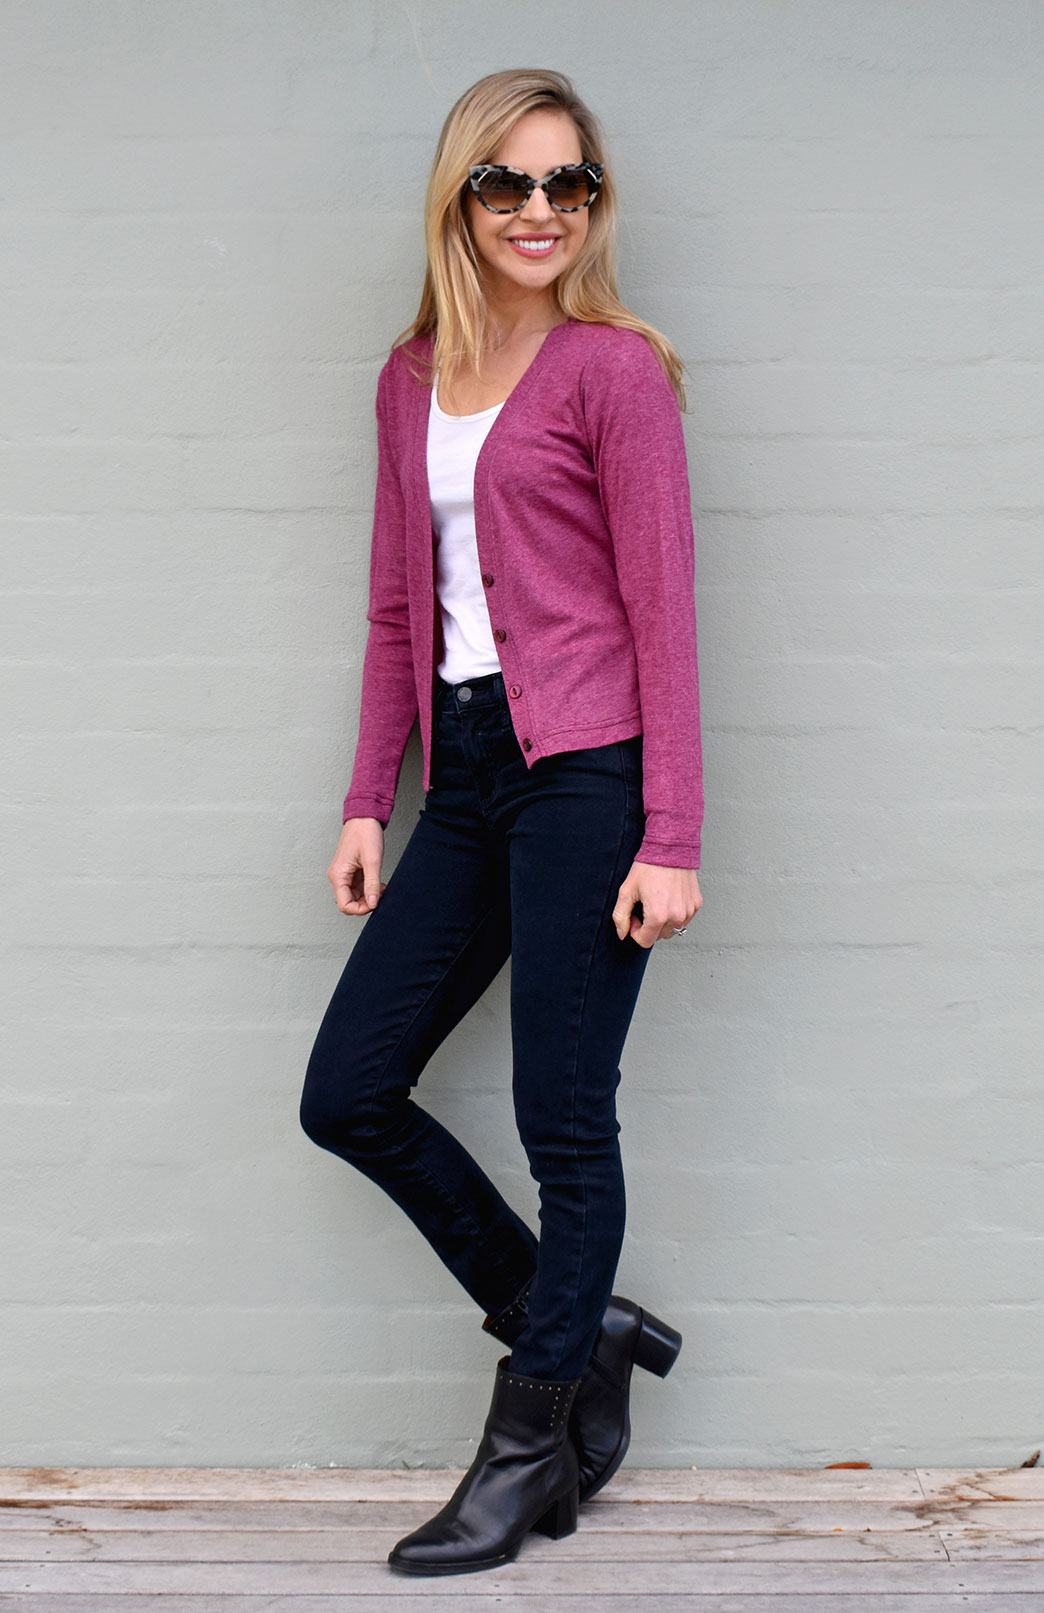 Crop Cardigan - Long Sleeved - Women's Classic Boysenberry Marl Long Sleeve Merino Wool Cropped Cardigan with Buttons - Smitten Merino Tasmania Australia